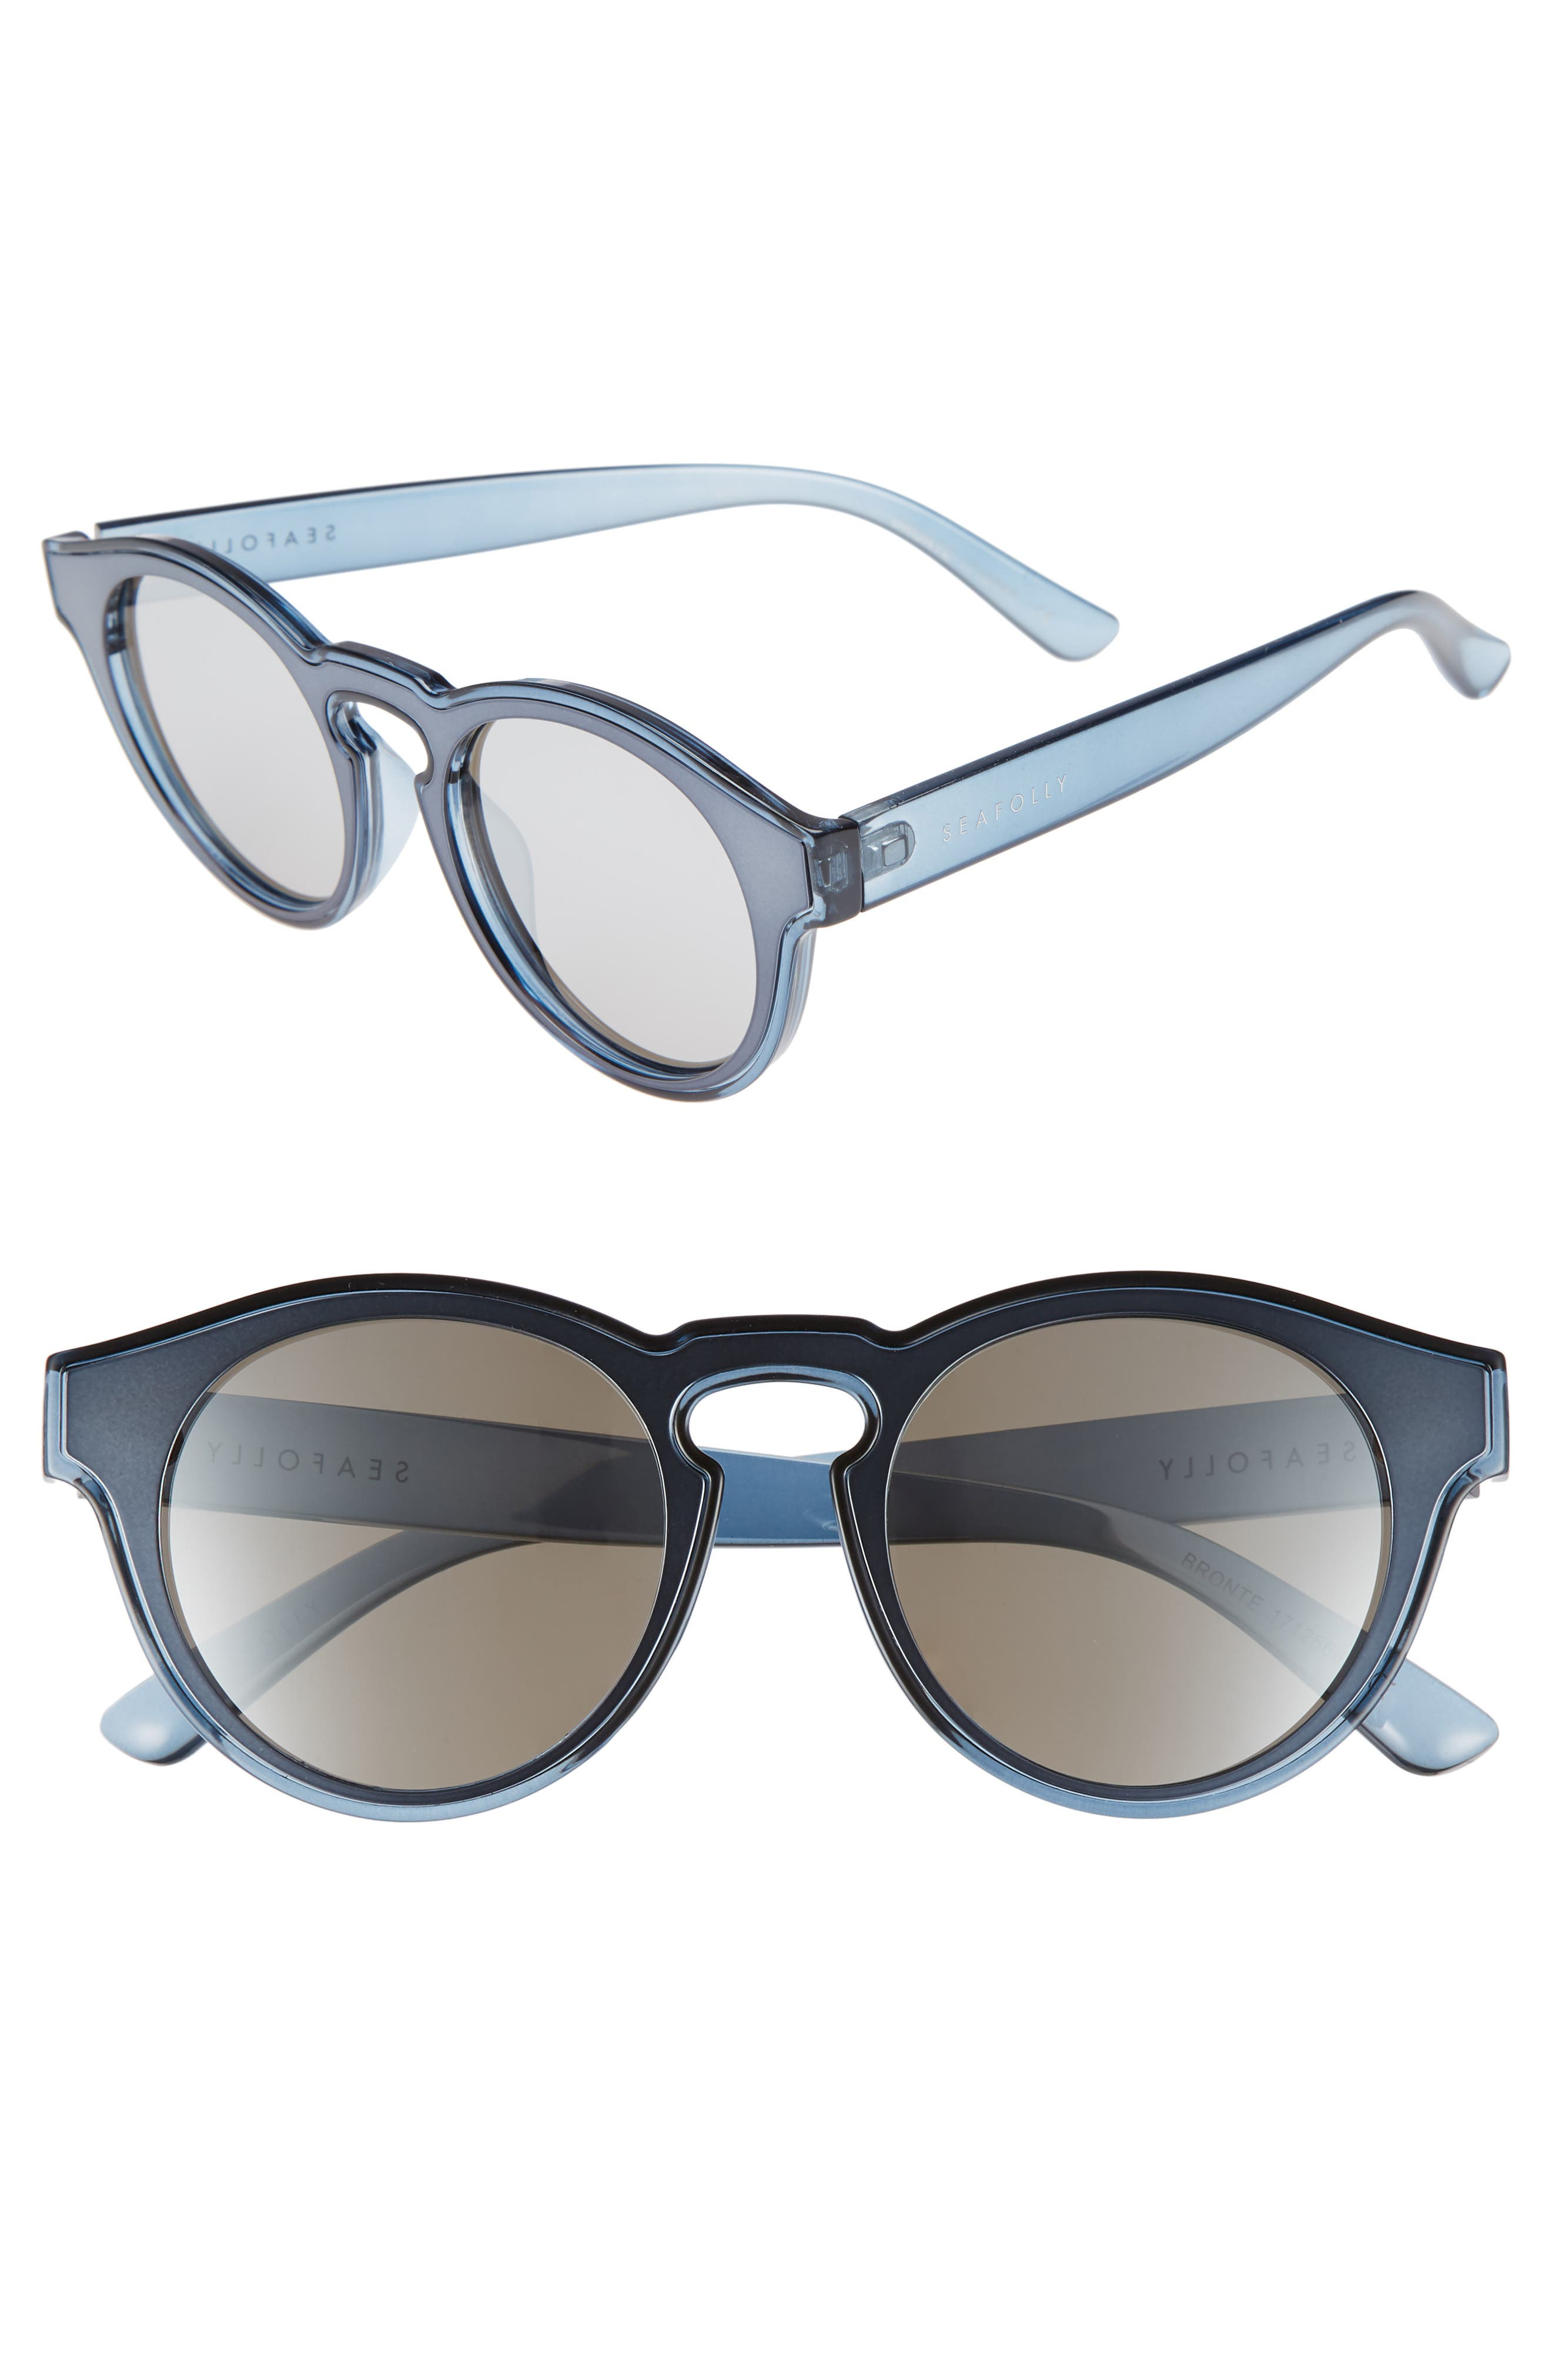 Bronte 50mm Sunglasses,                             Main thumbnail 1, color,                             Blue Stone